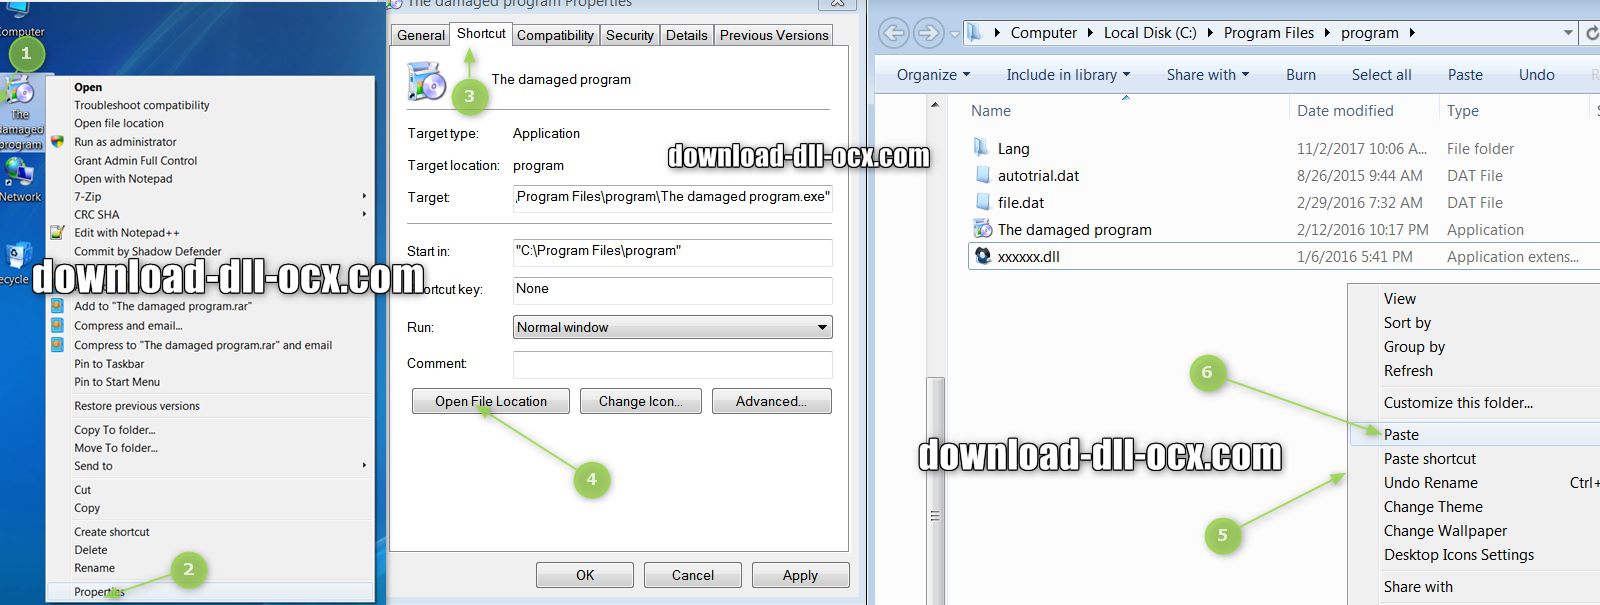 how to install 2escomus.dll file? for fix missing